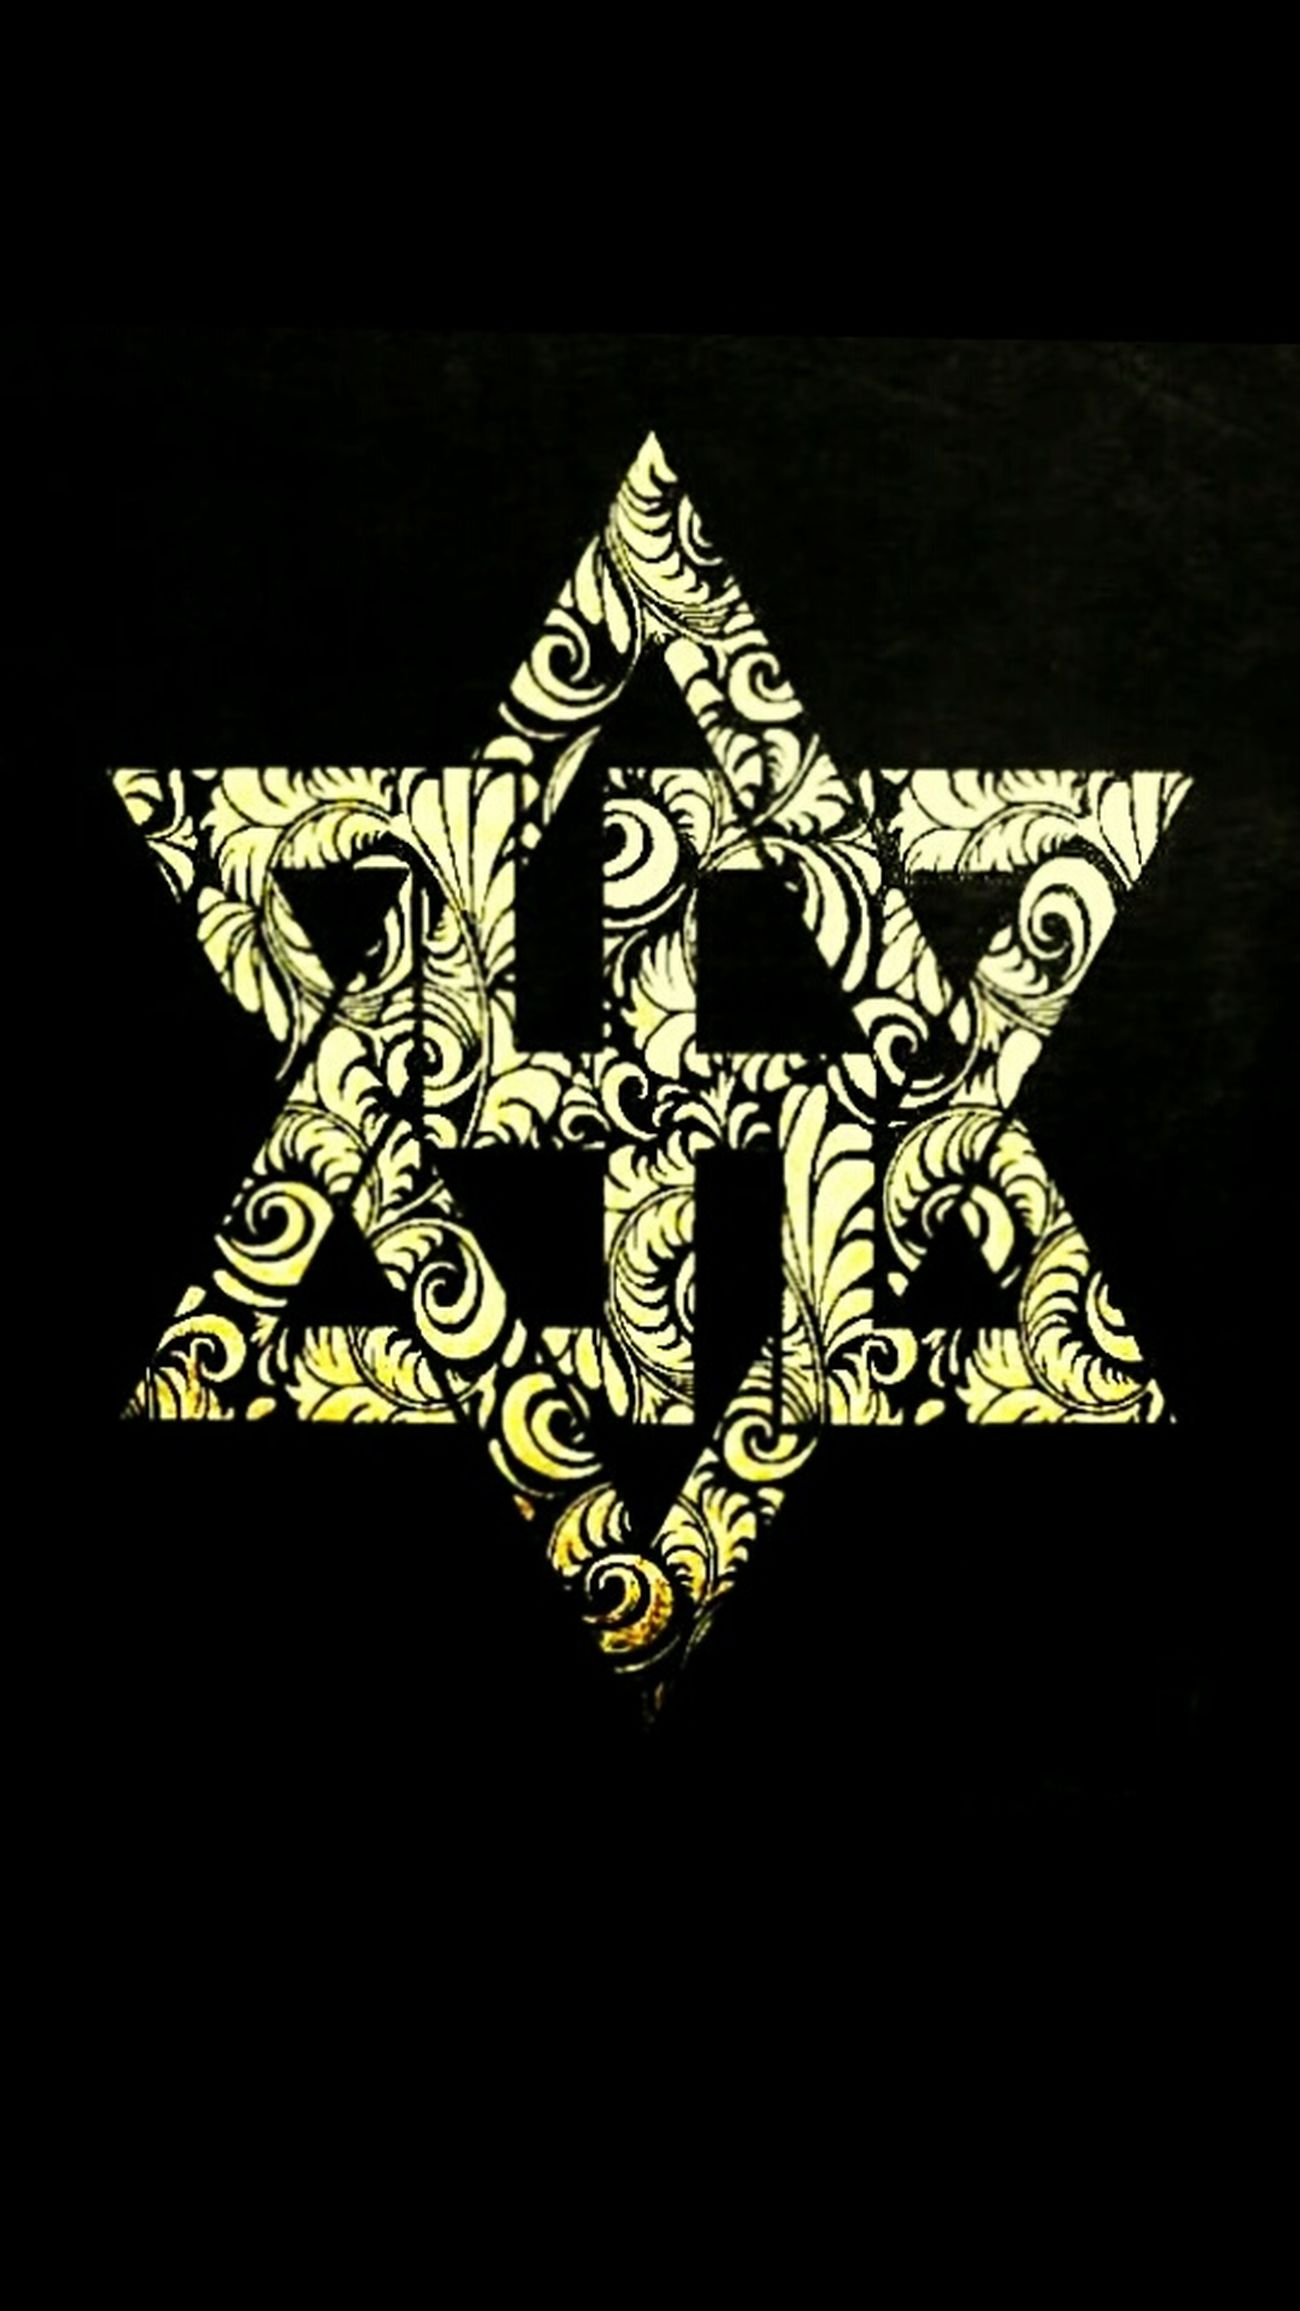 Elohim Peace And Tranquility Freedom Of Expression Meditation Is A Must Humanityfirst Swastik Star Of David Infinity ∞ Rael 😍❤ non Mysticism Science Rules NO GOD, NO MASTER